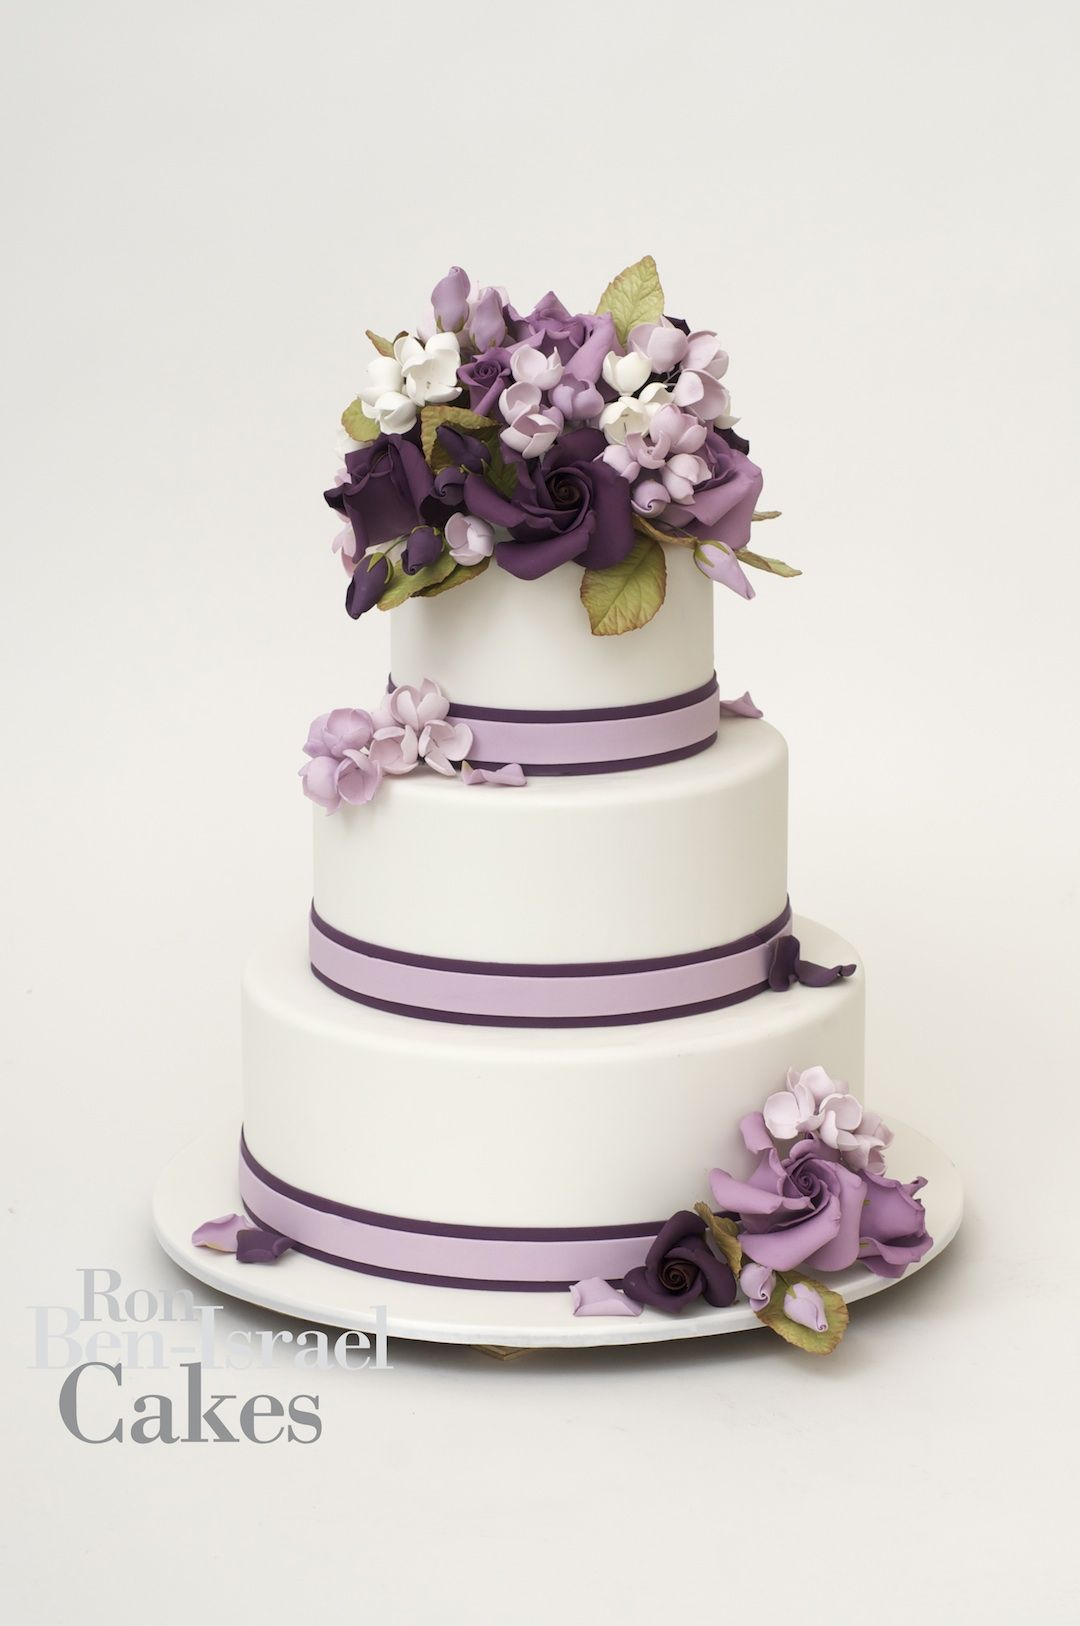 Ron Ben-Israel Cakes - five tier white wedding cake with classic fl ...